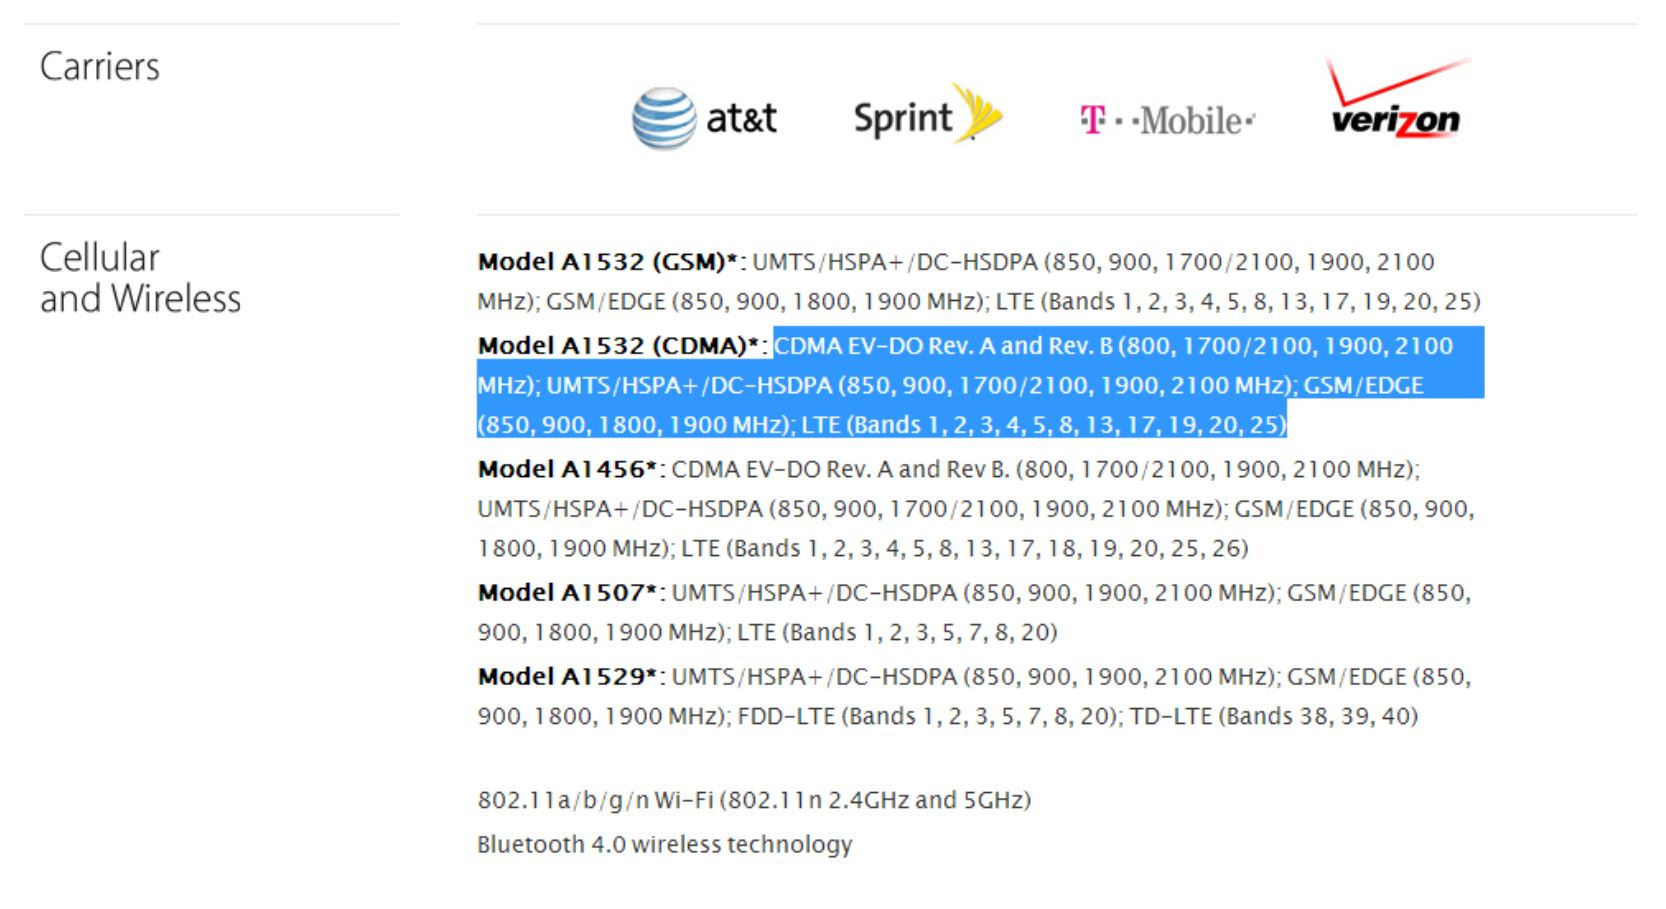 Switchers May Find Better Value in Start iPhone 5S, 5C